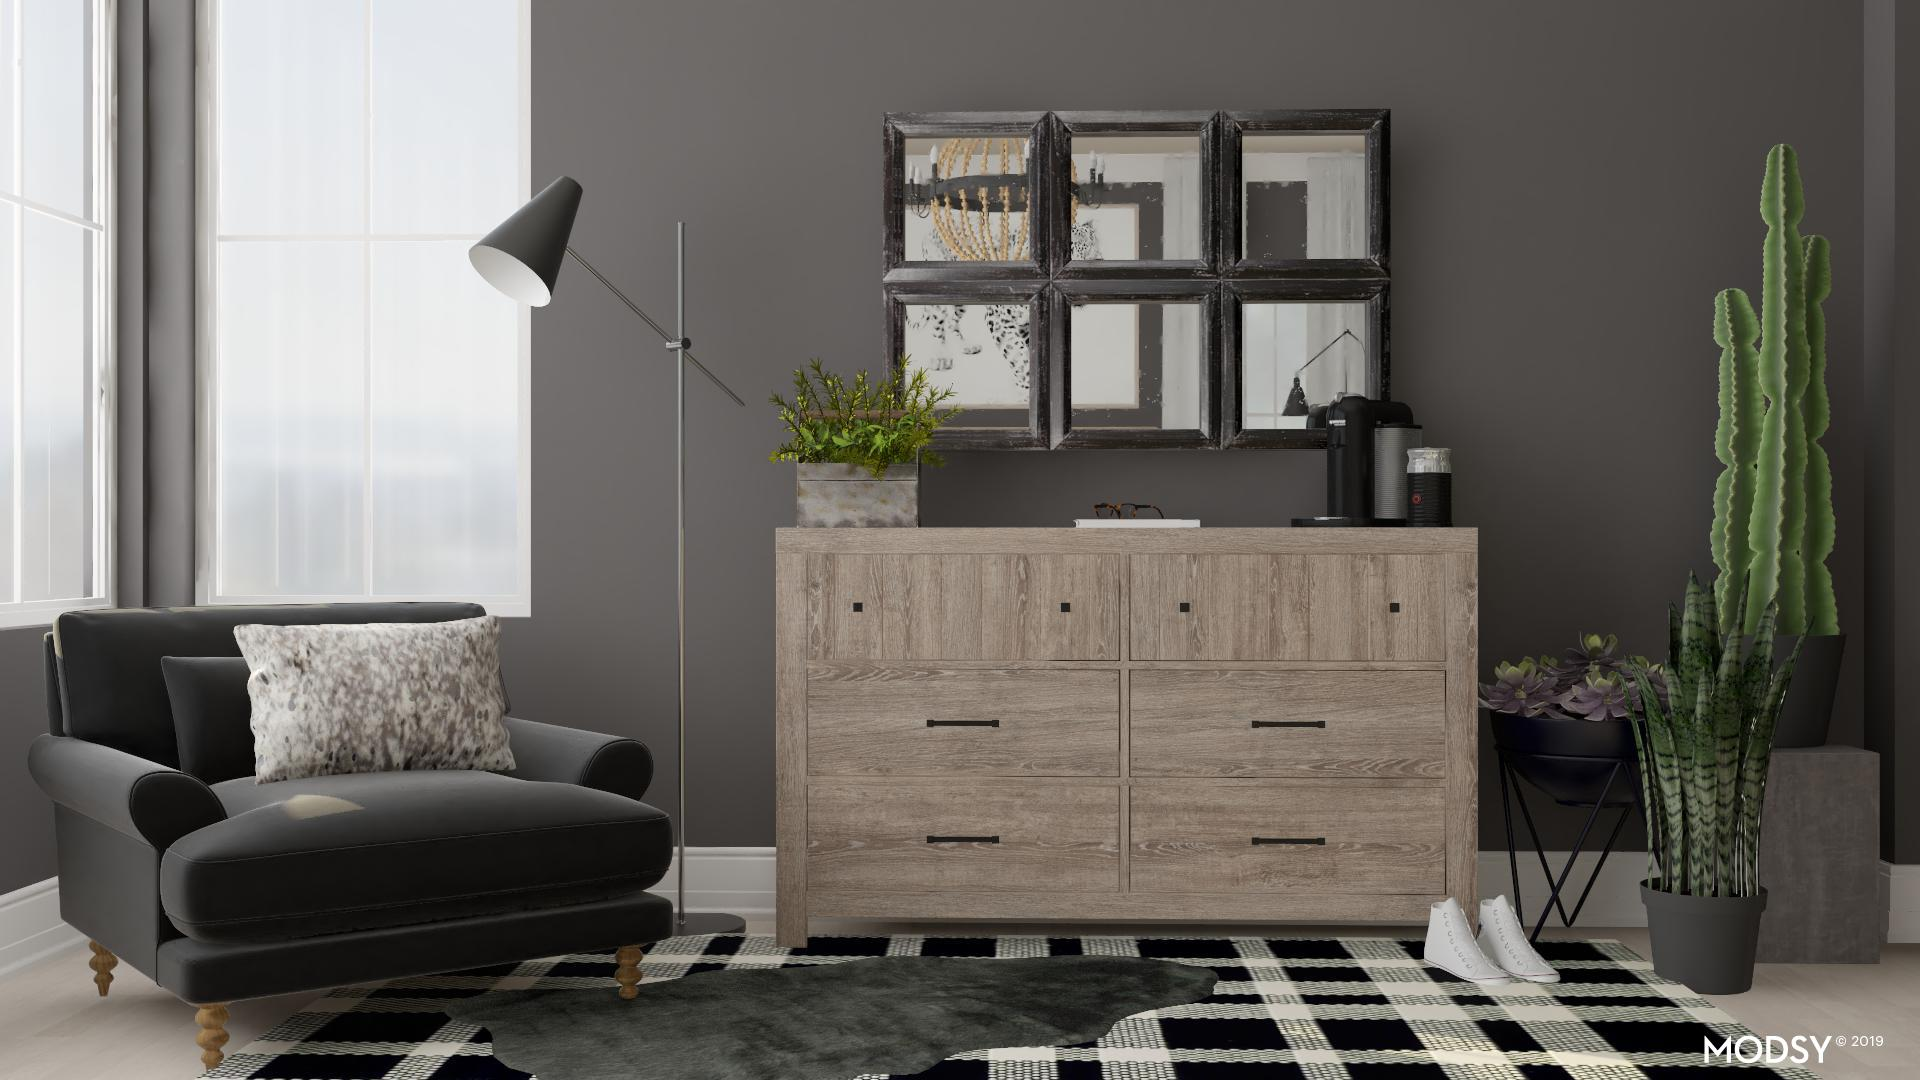 Grey Walls Design Ideas And Styles From Modsy Designers